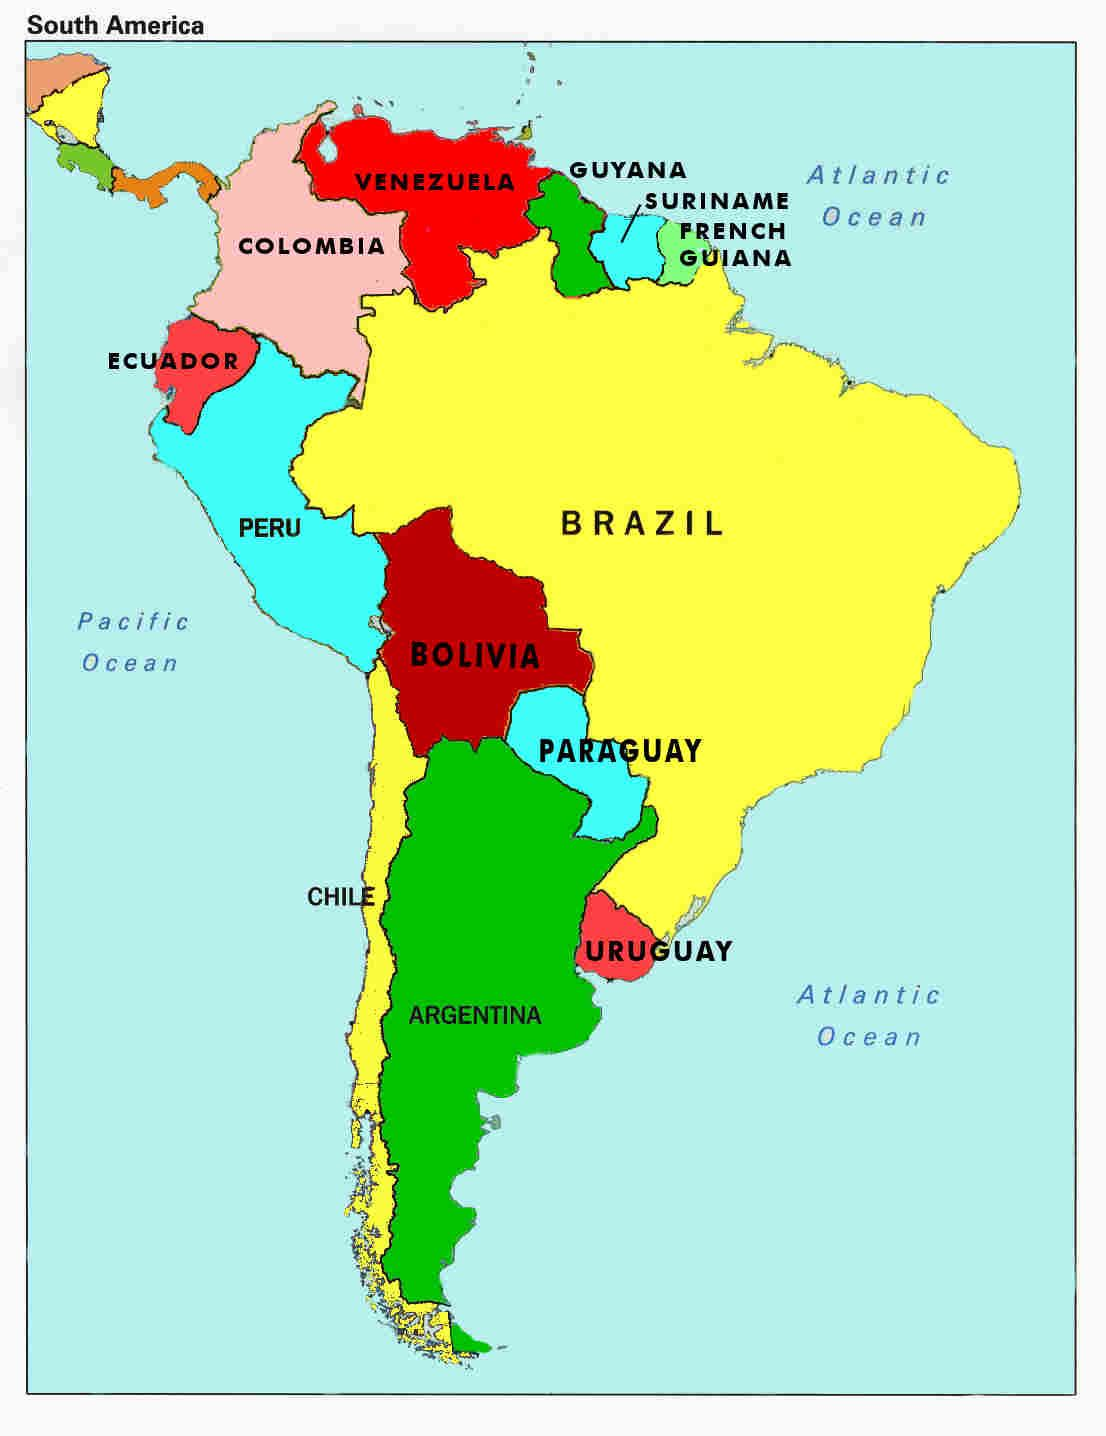 South America Map Countries map of south america countries and capitals | Map of South America